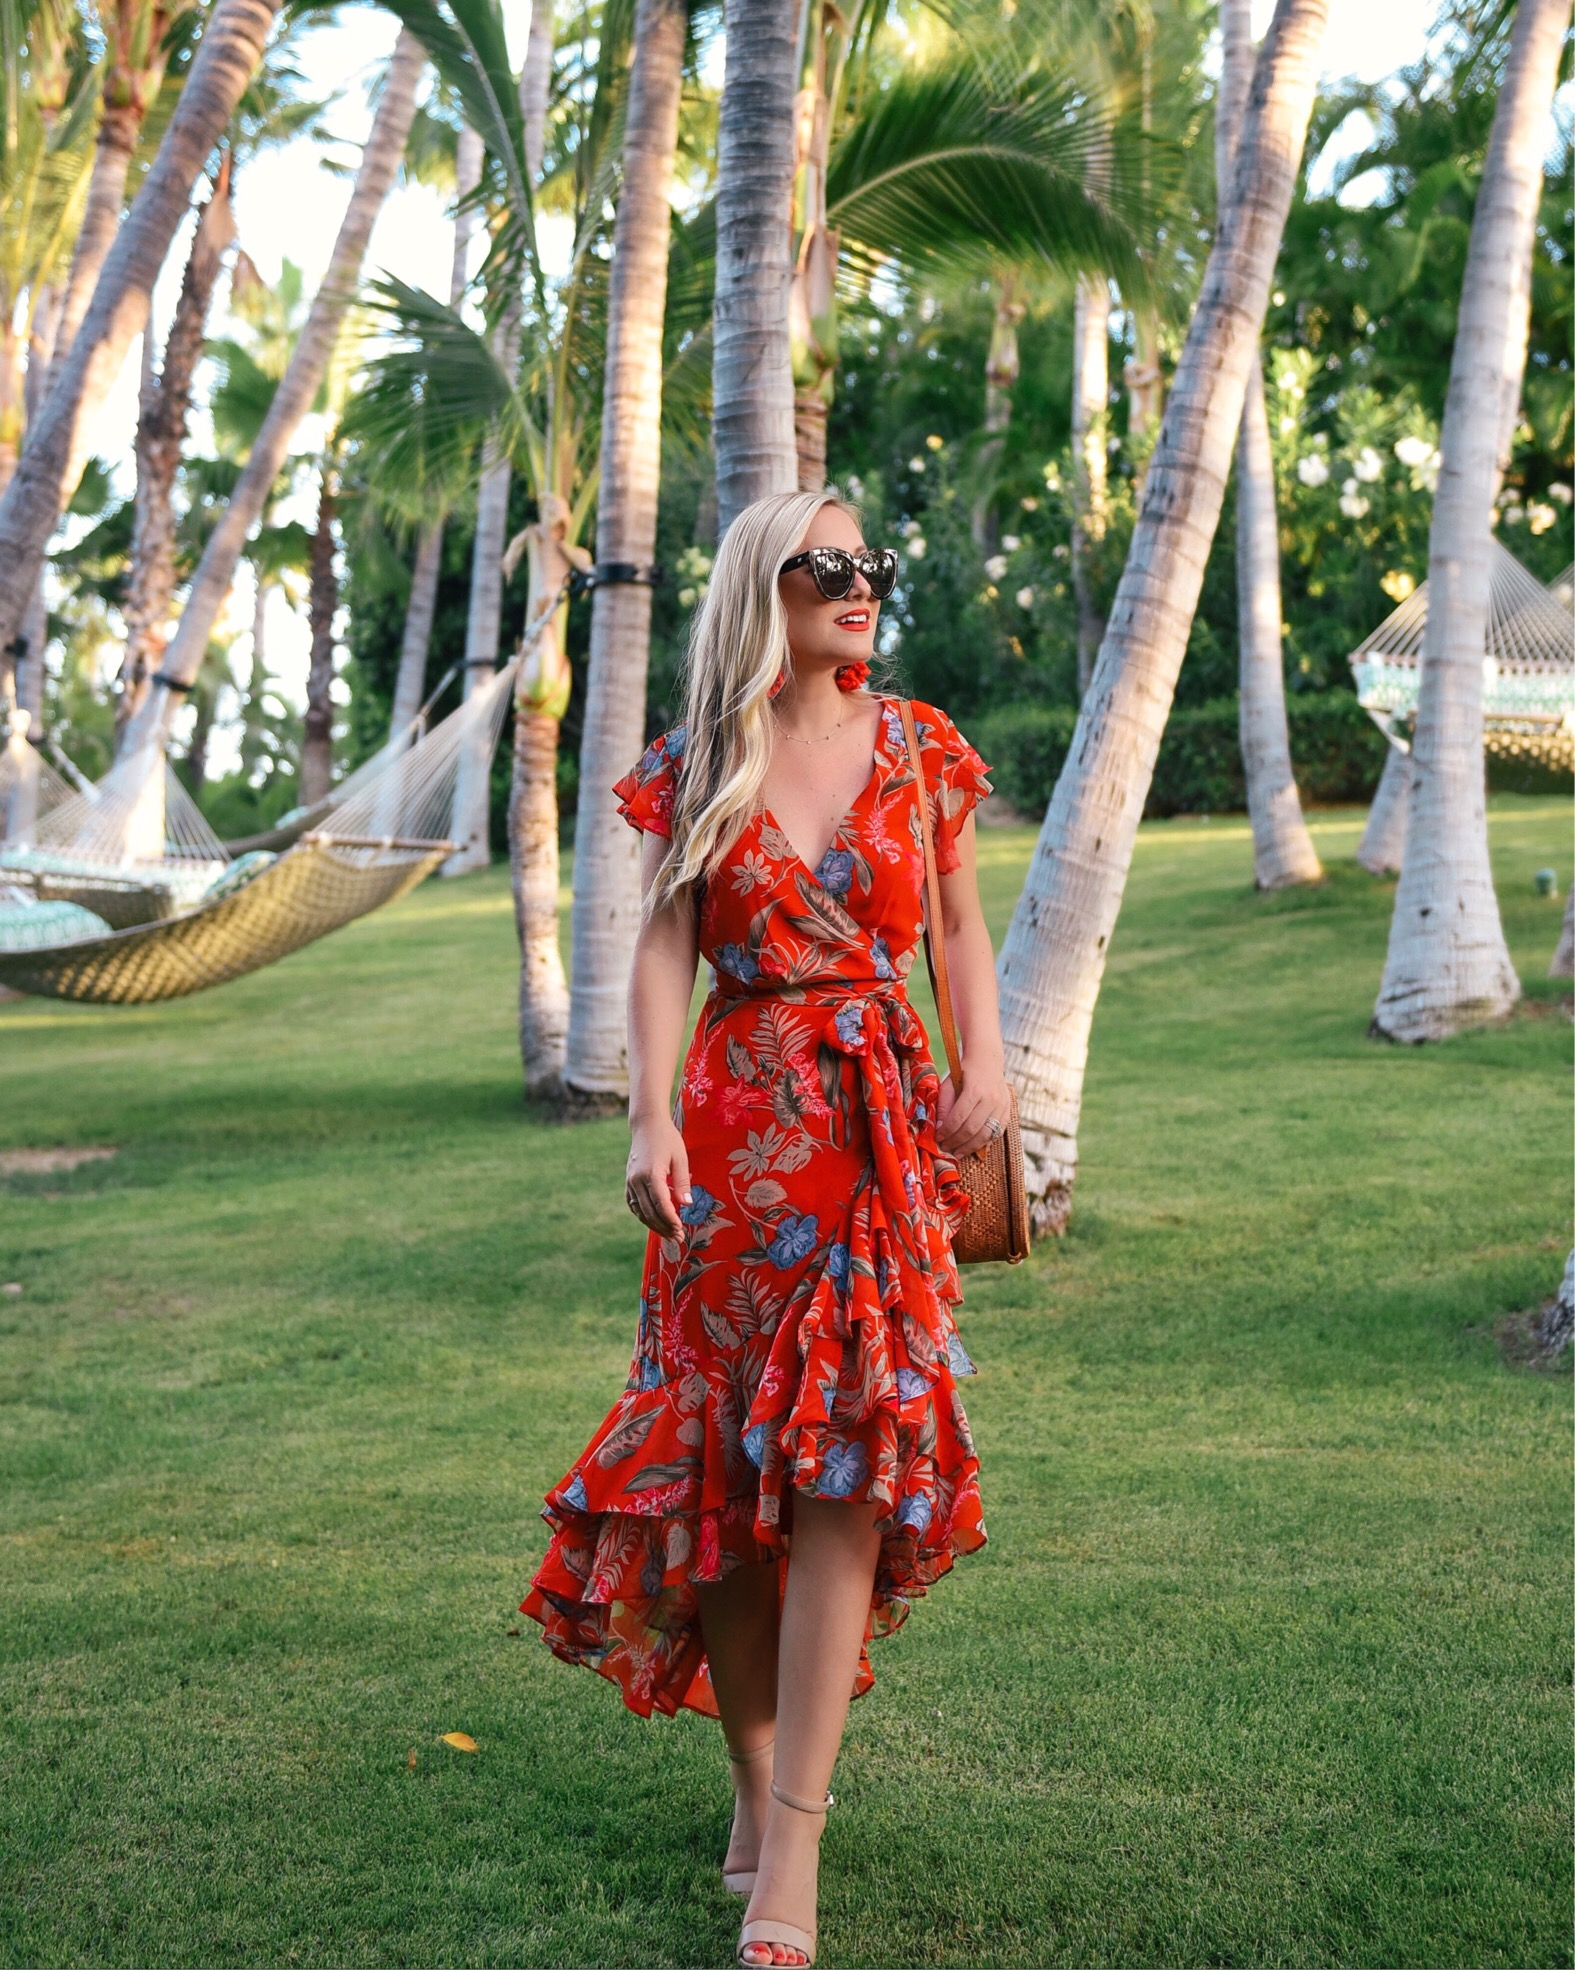 Lo-Murphy-Red-Dress-Cabo-Tropical-Dress-Travel-Blogger